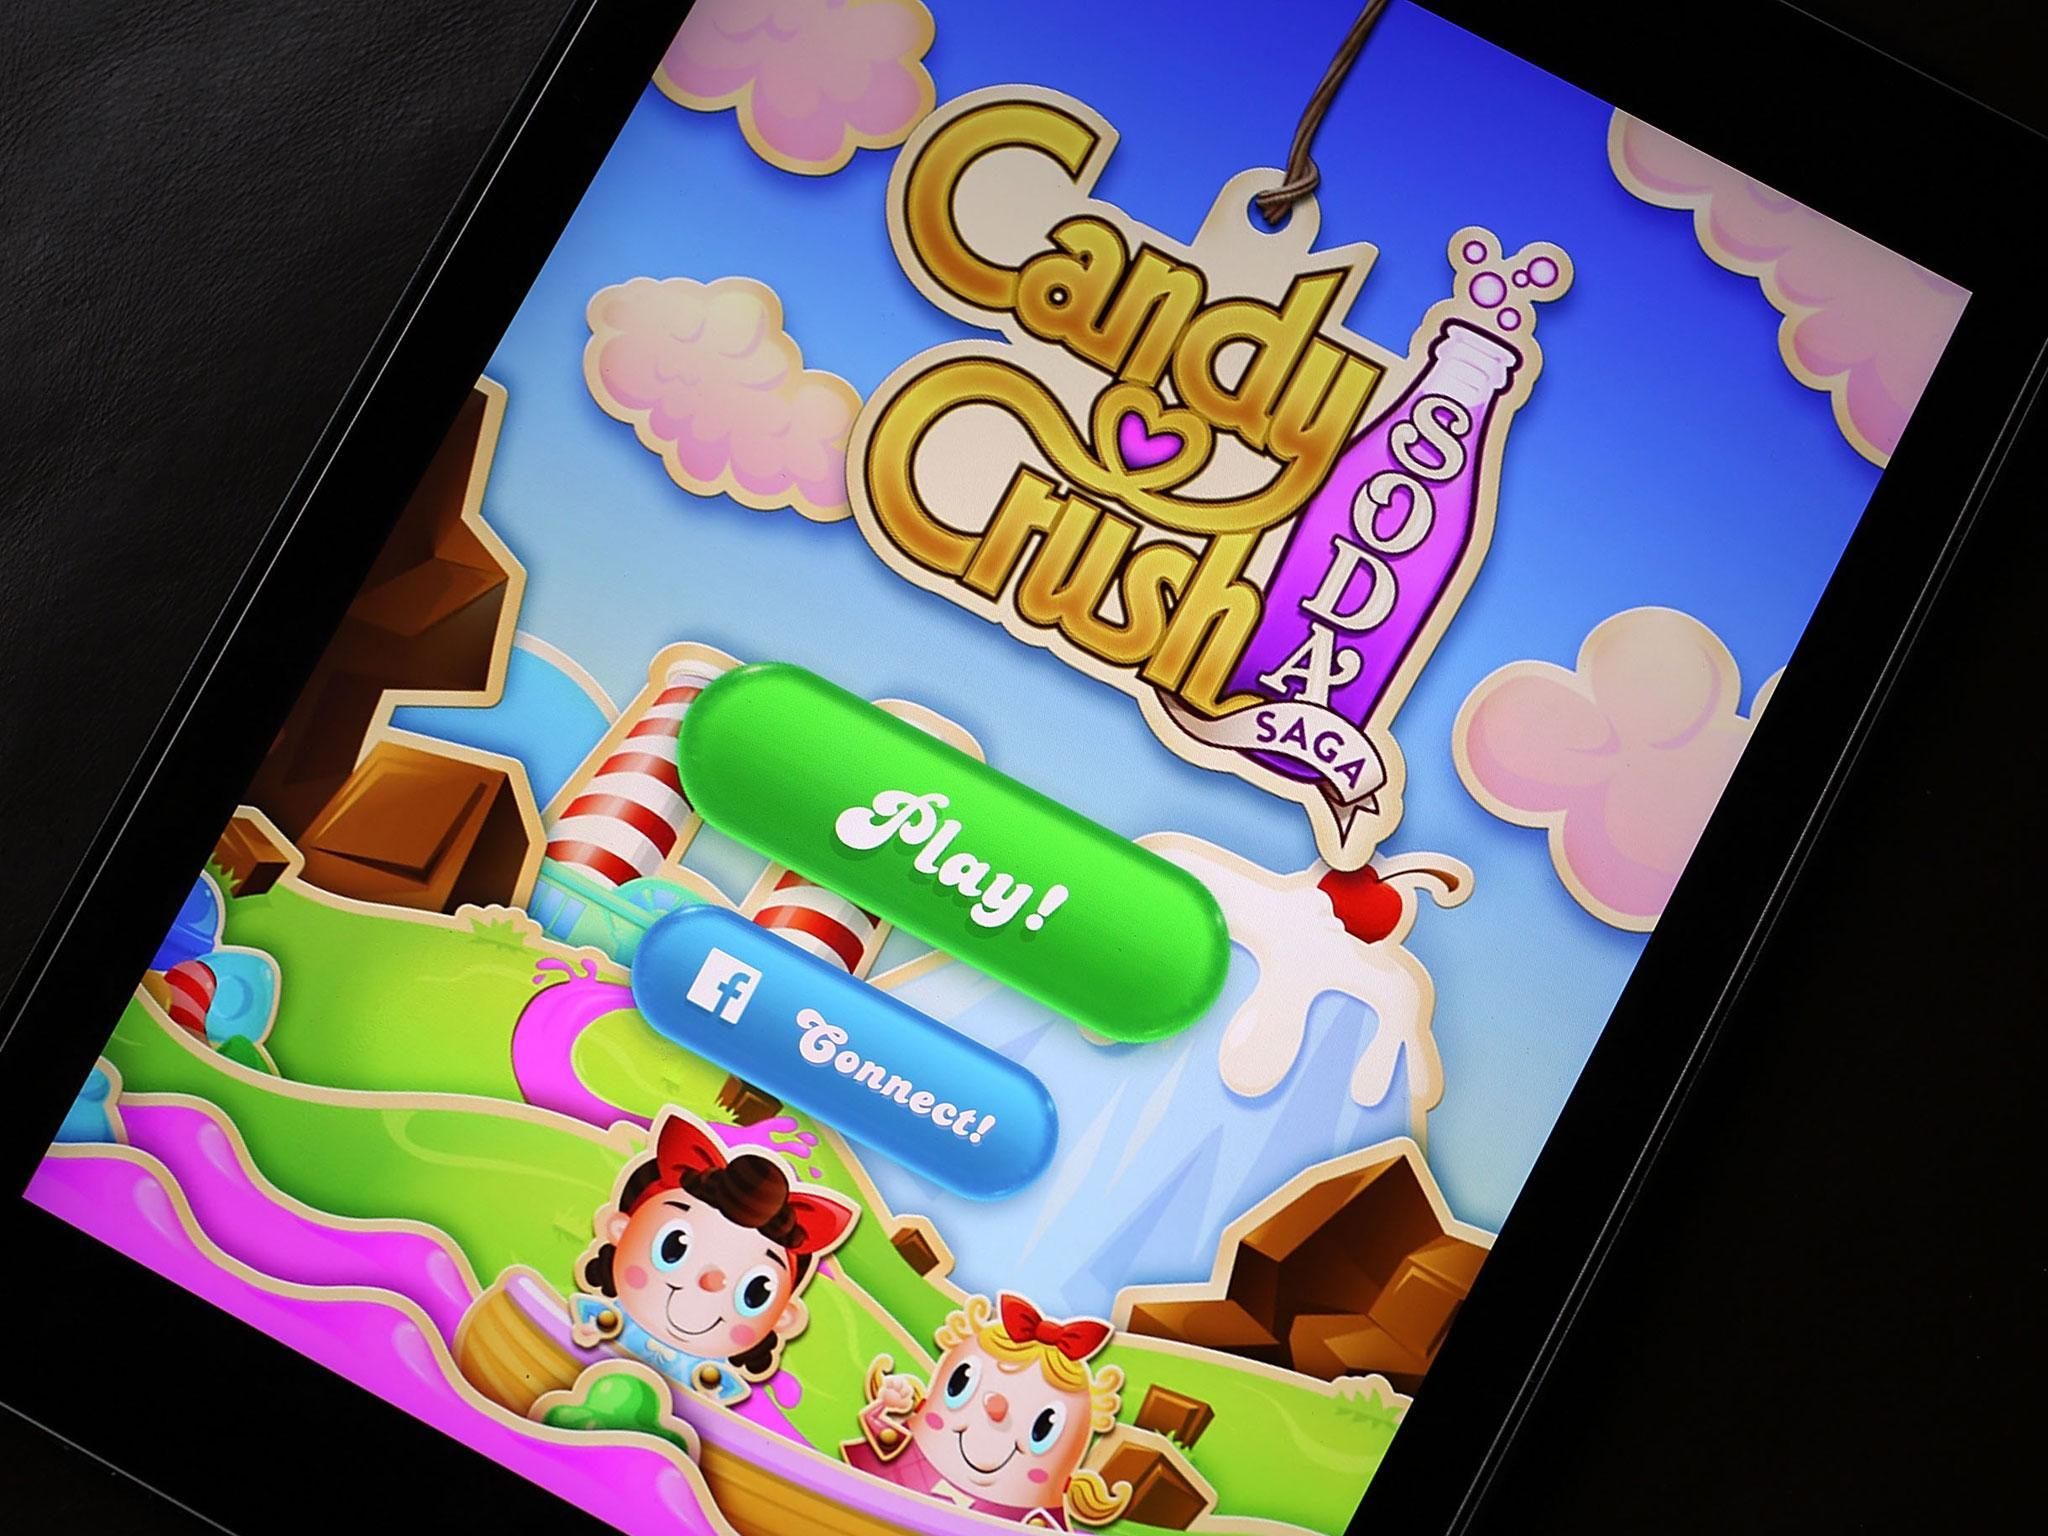 candy crush dating Professional quality candy crush images and pictures at very affordable prices with over 50 million stunning photos to choose from we've got what you need.